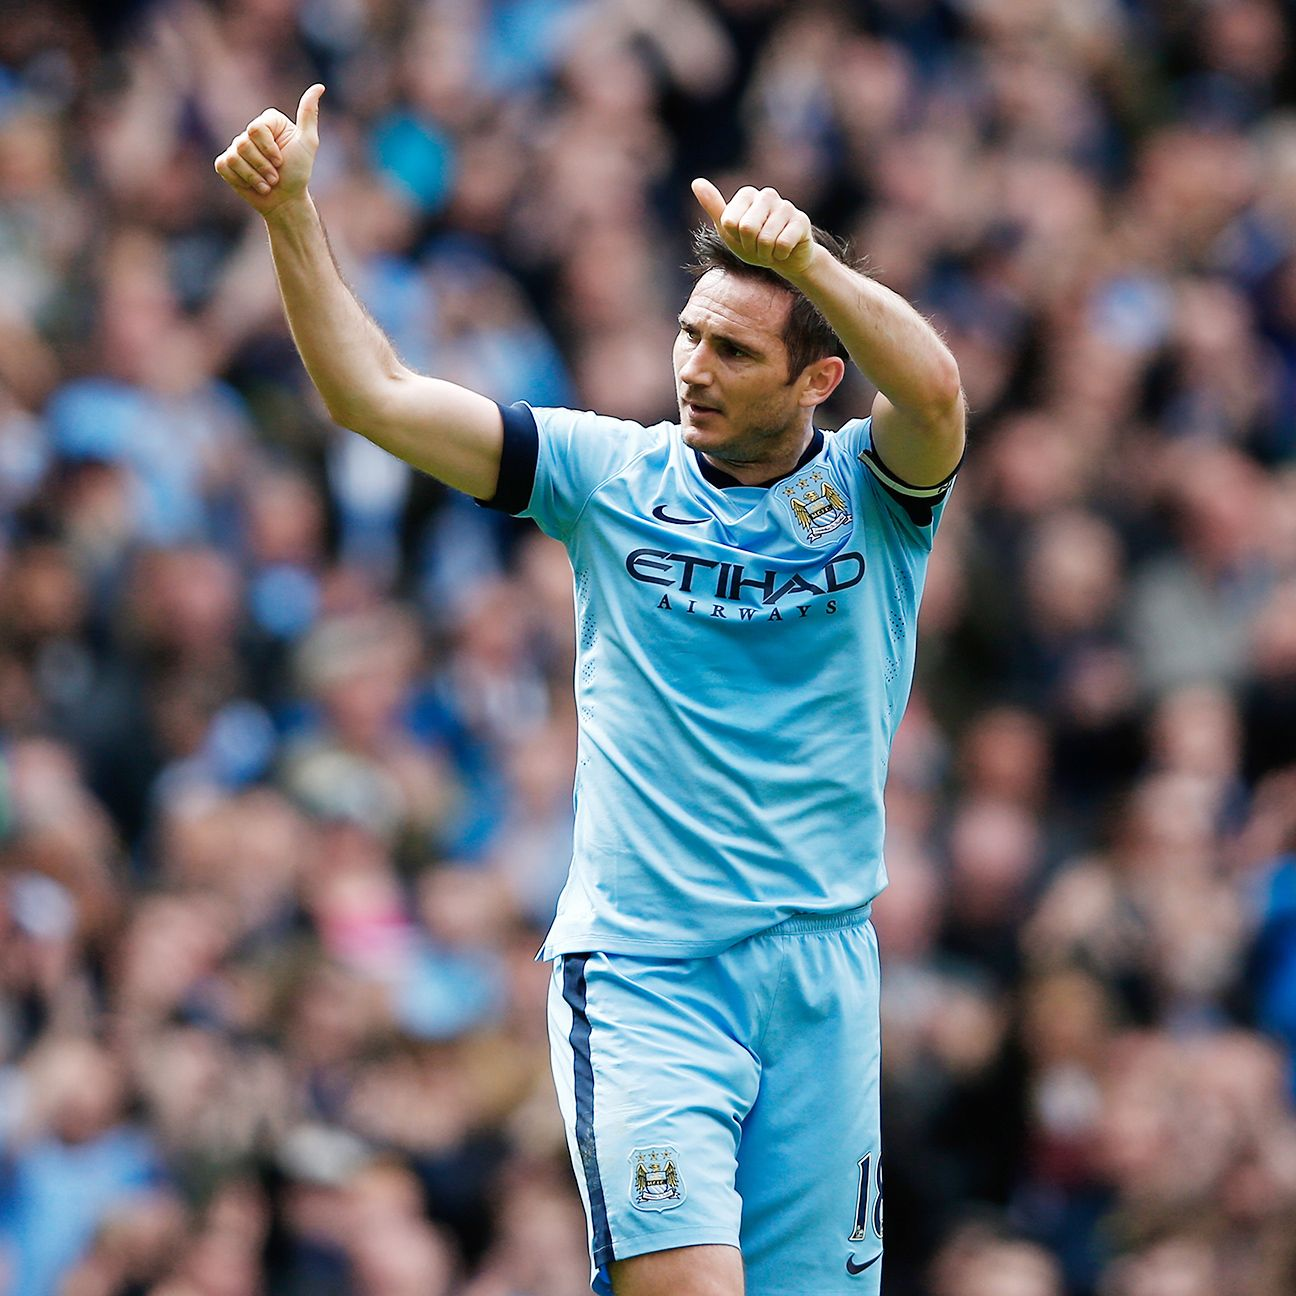 Frank Lampard scored his sixth Premier League goal of the season in City's 2-0 win.